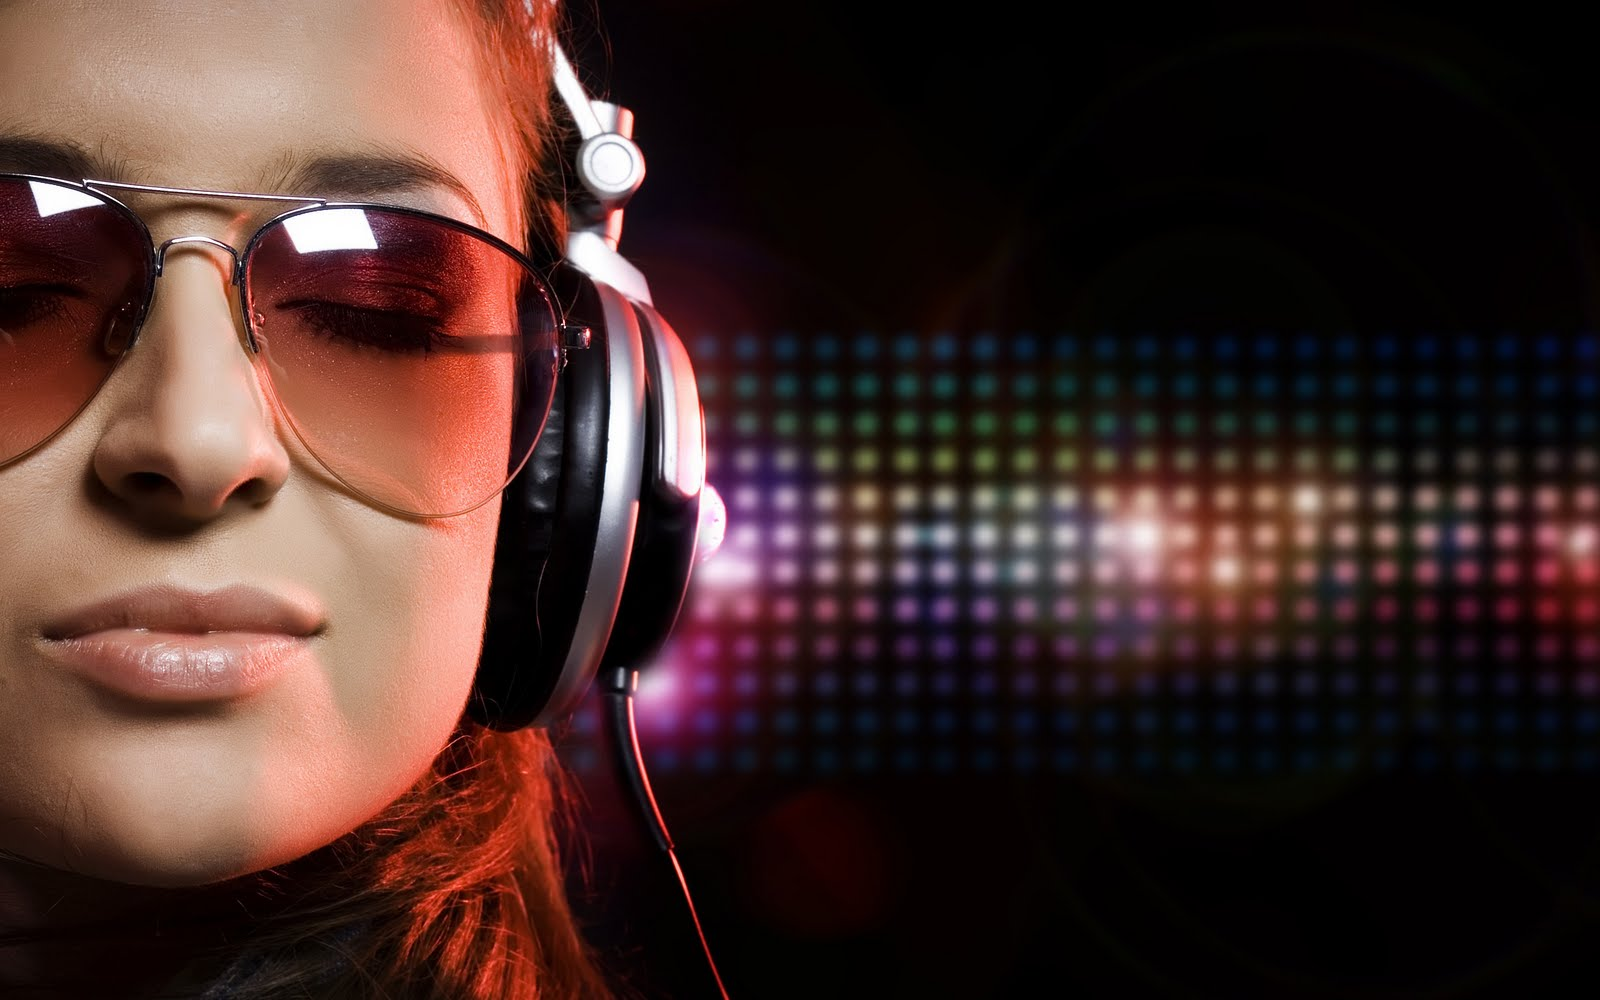 http://4.bp.blogspot.com/-dE1xDqE9EZU/TvNYVYuhhTI/AAAAAAAAACQ/dVn-wPyGblY/s1600/wallpaper-face-girl-woman-music-headphones-hd-desktop-wallpapers-l-a-ibackgroundz.com.jpg